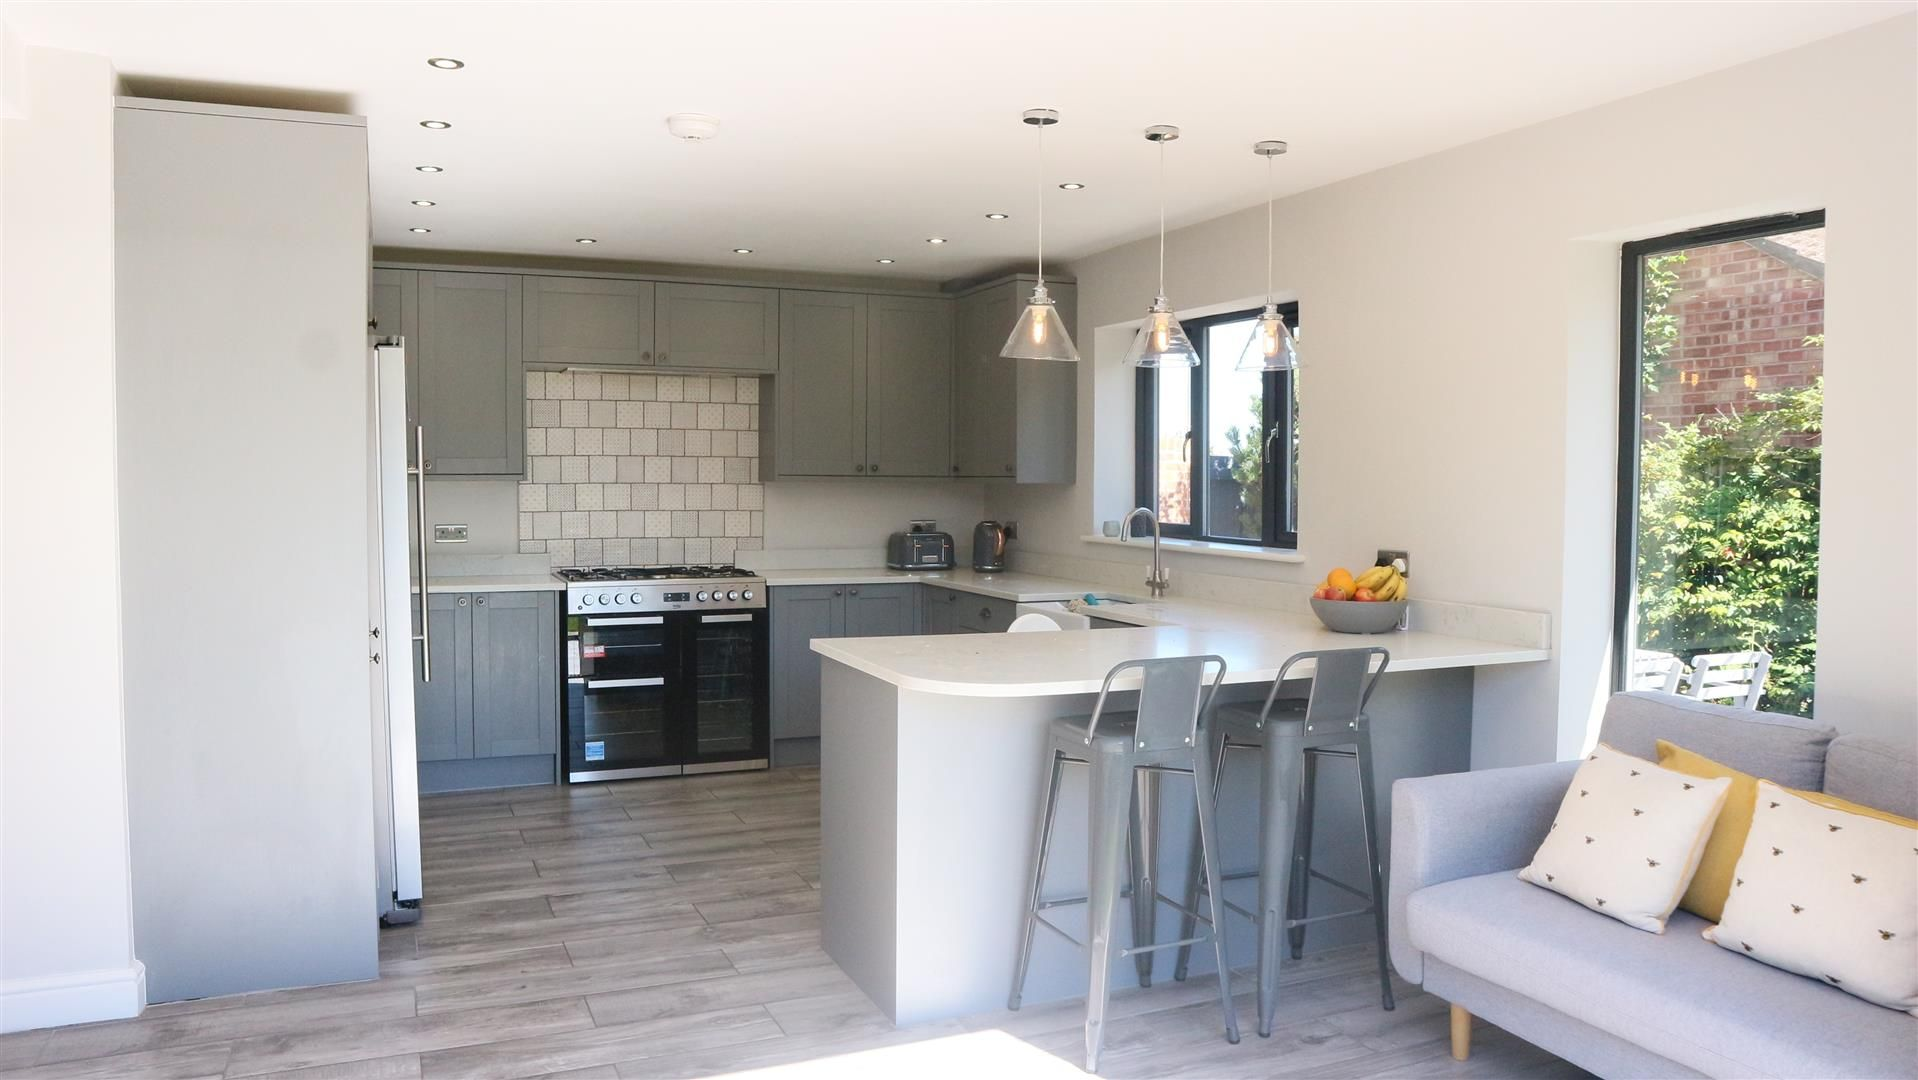 4 bed detached for sale in Norton 3